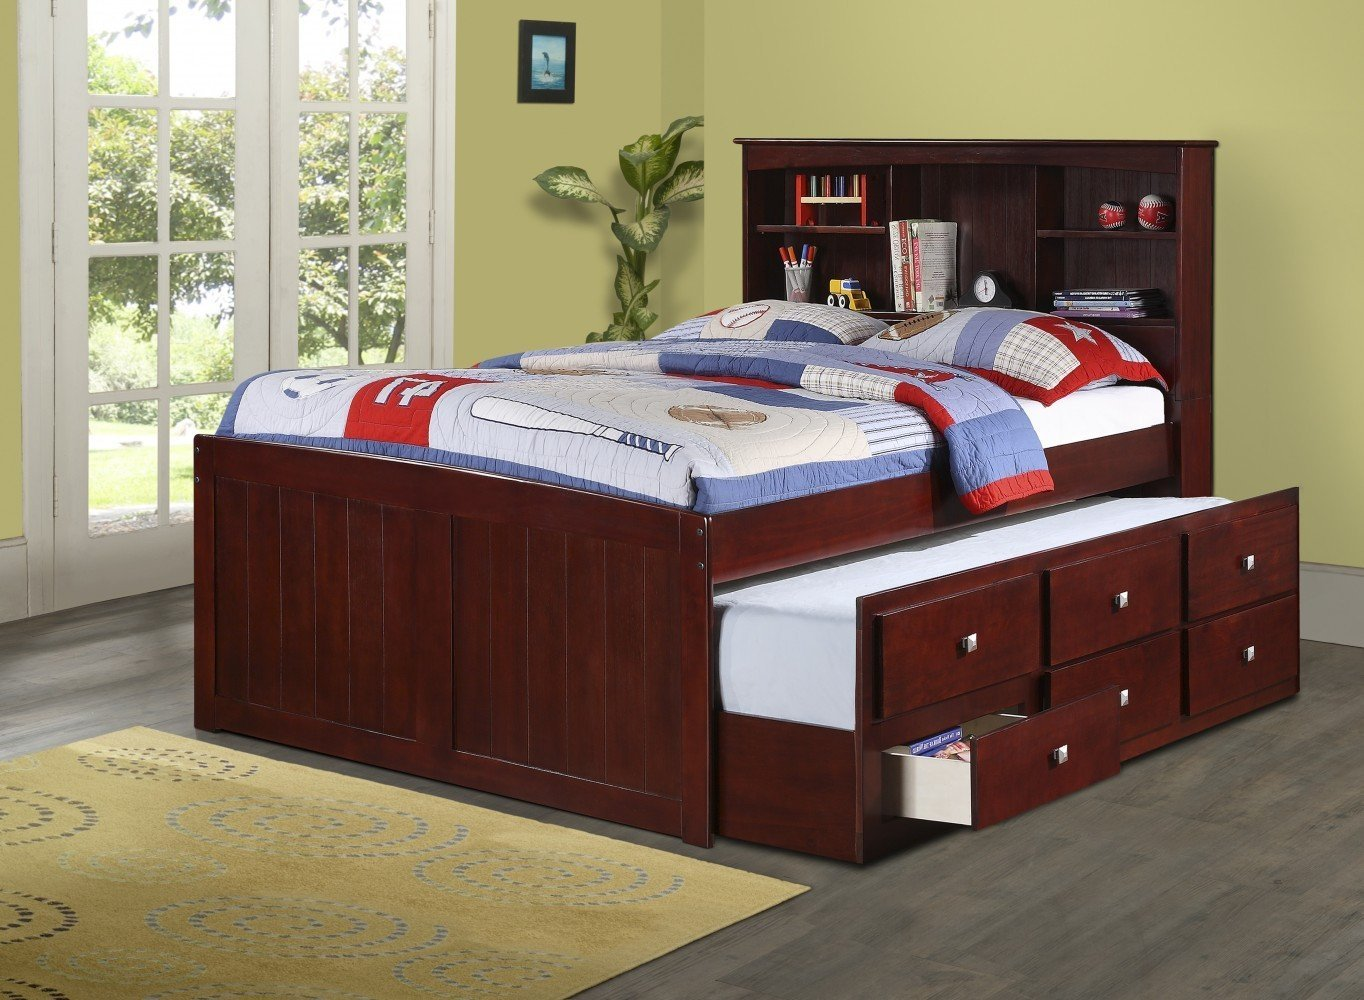 Captains Full Bed for Kids with Bookcase Headboard & Free Storage Pockets